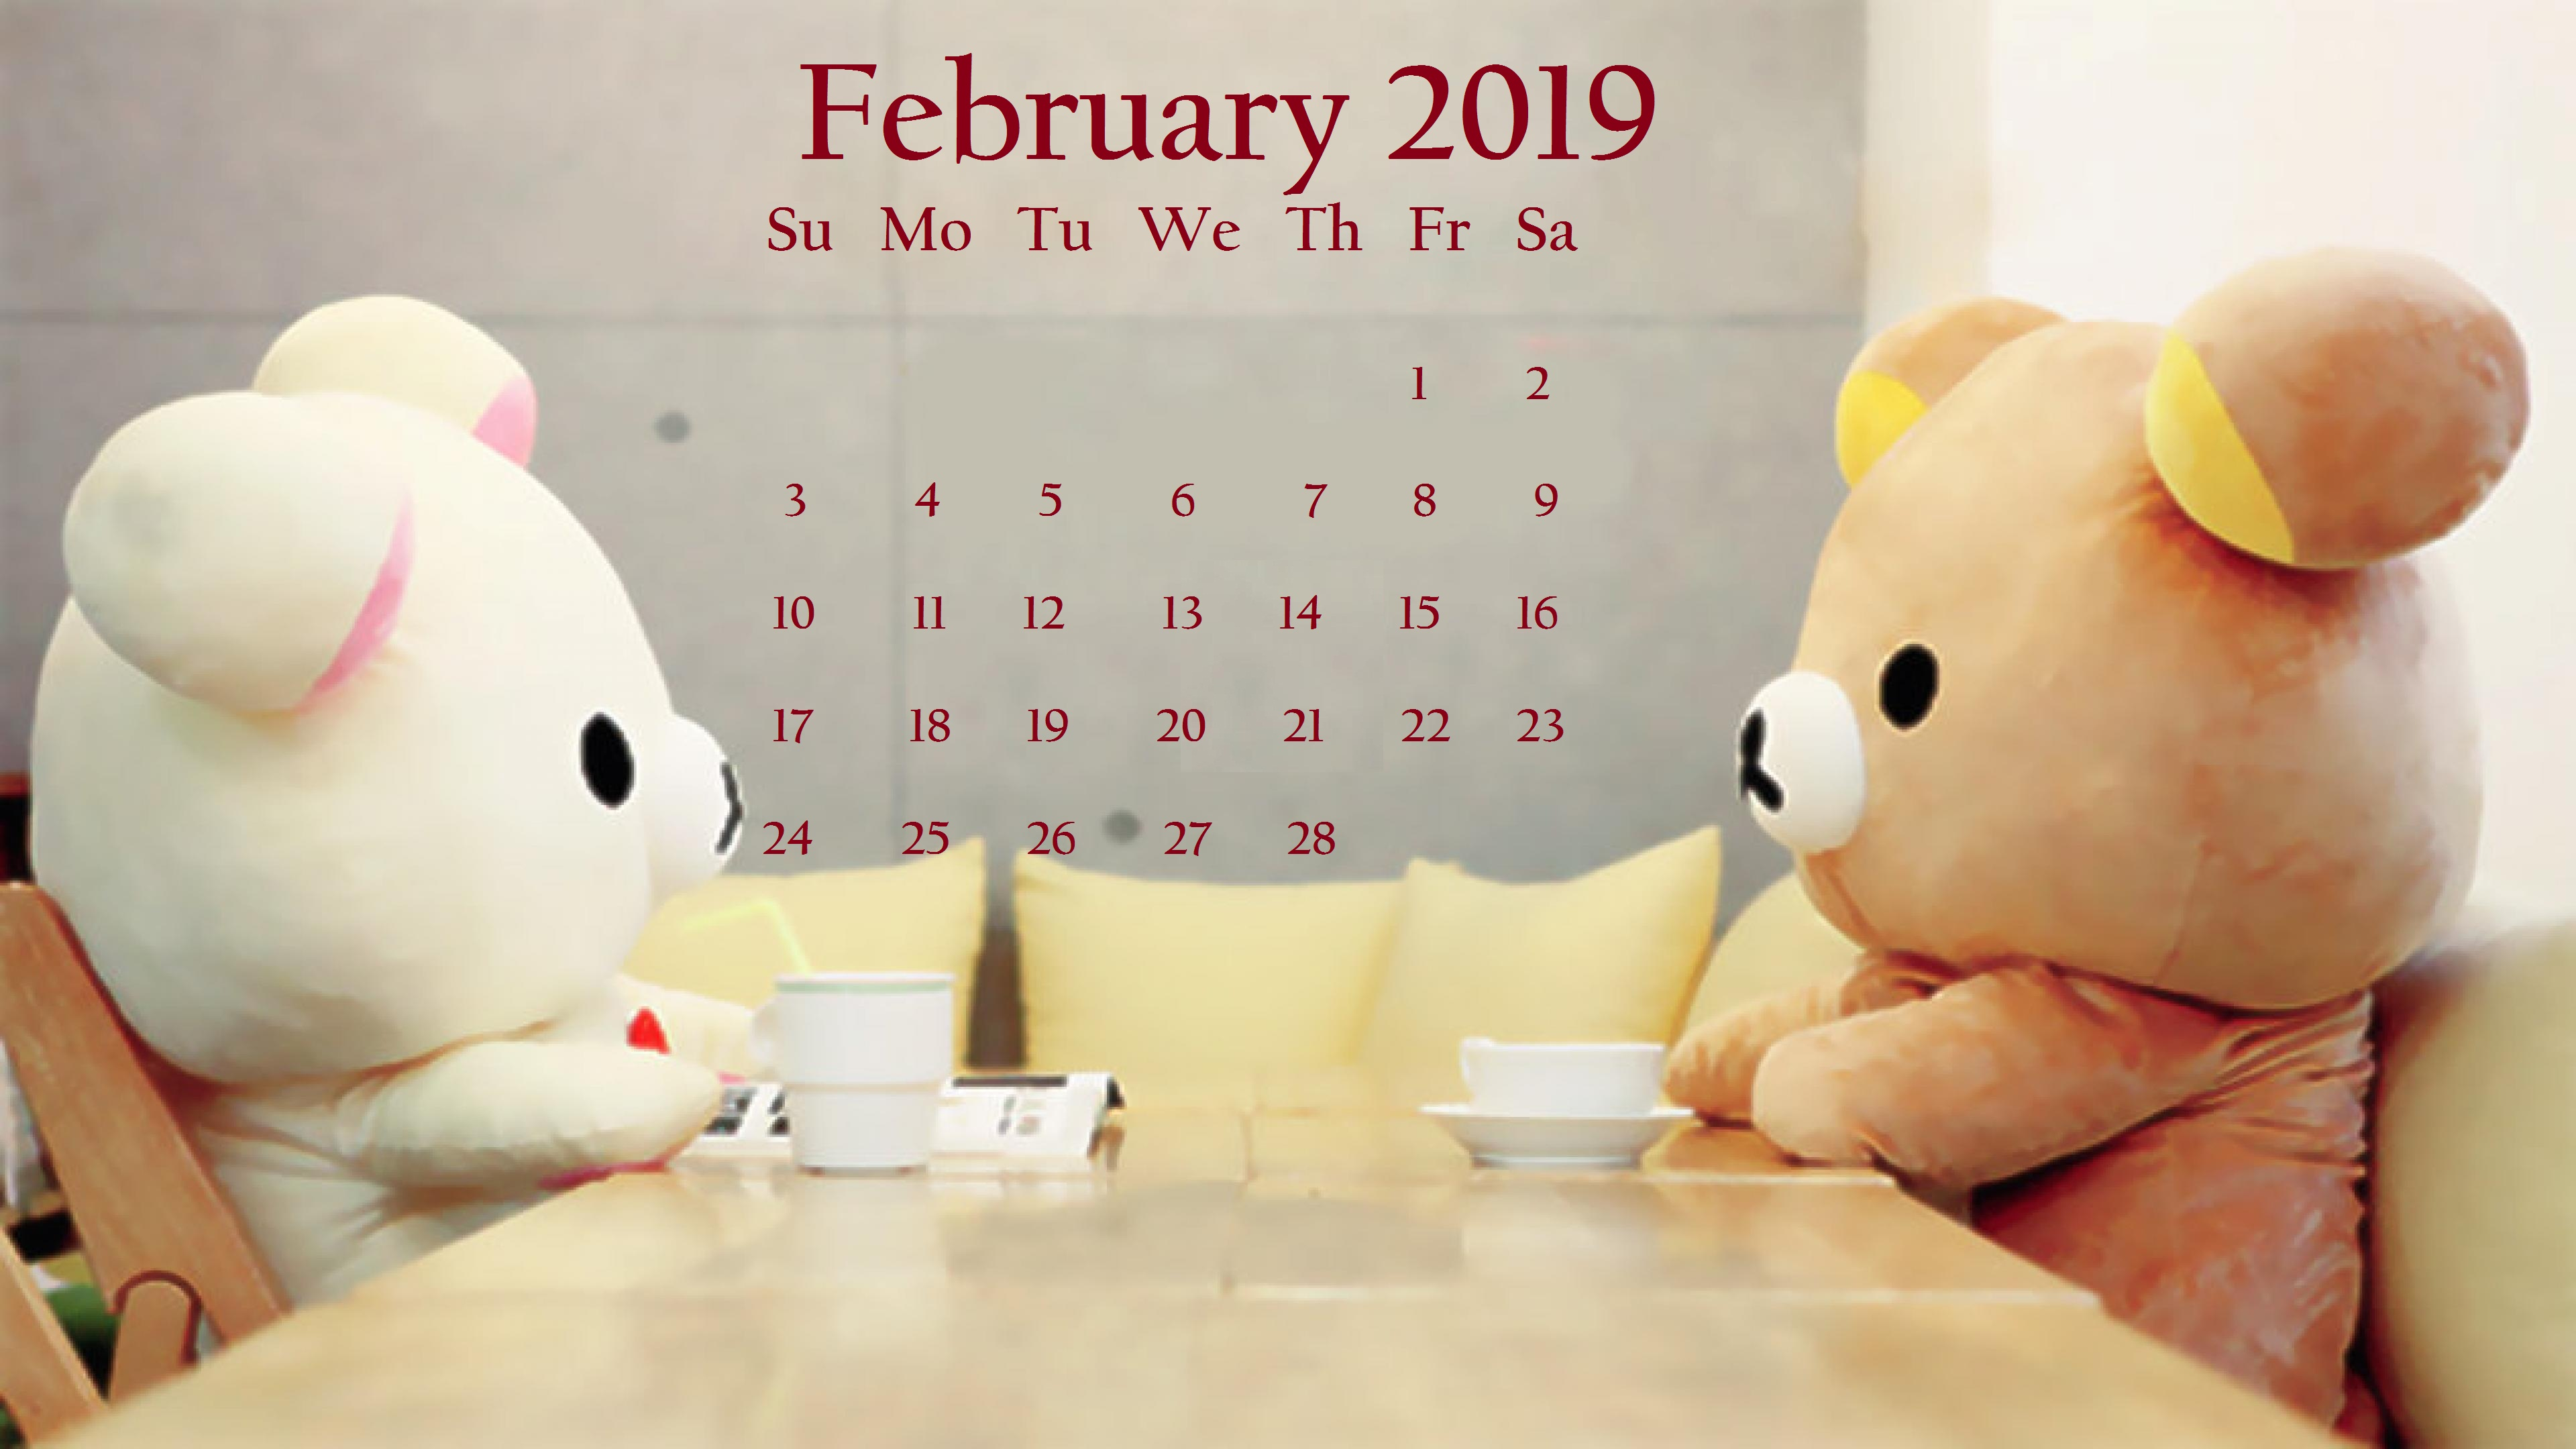 Cutey February 2019 Desktop Wallpaper